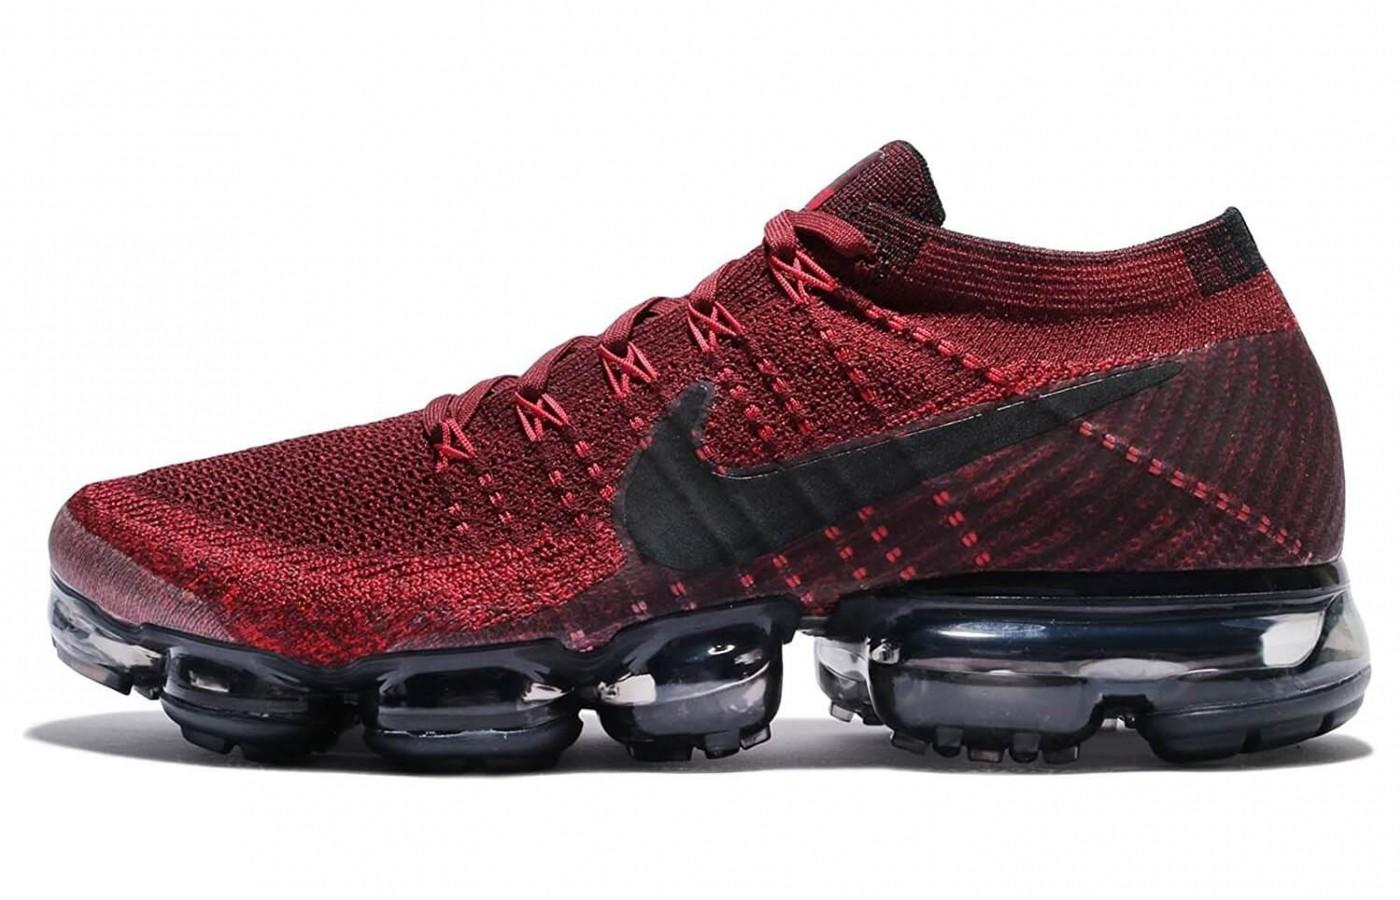 0cbed0a3bb1a Nike Air Vapormax Flyknit. The platinum coloring and unique design help  this shoe stand out. For those who prefer darker tones